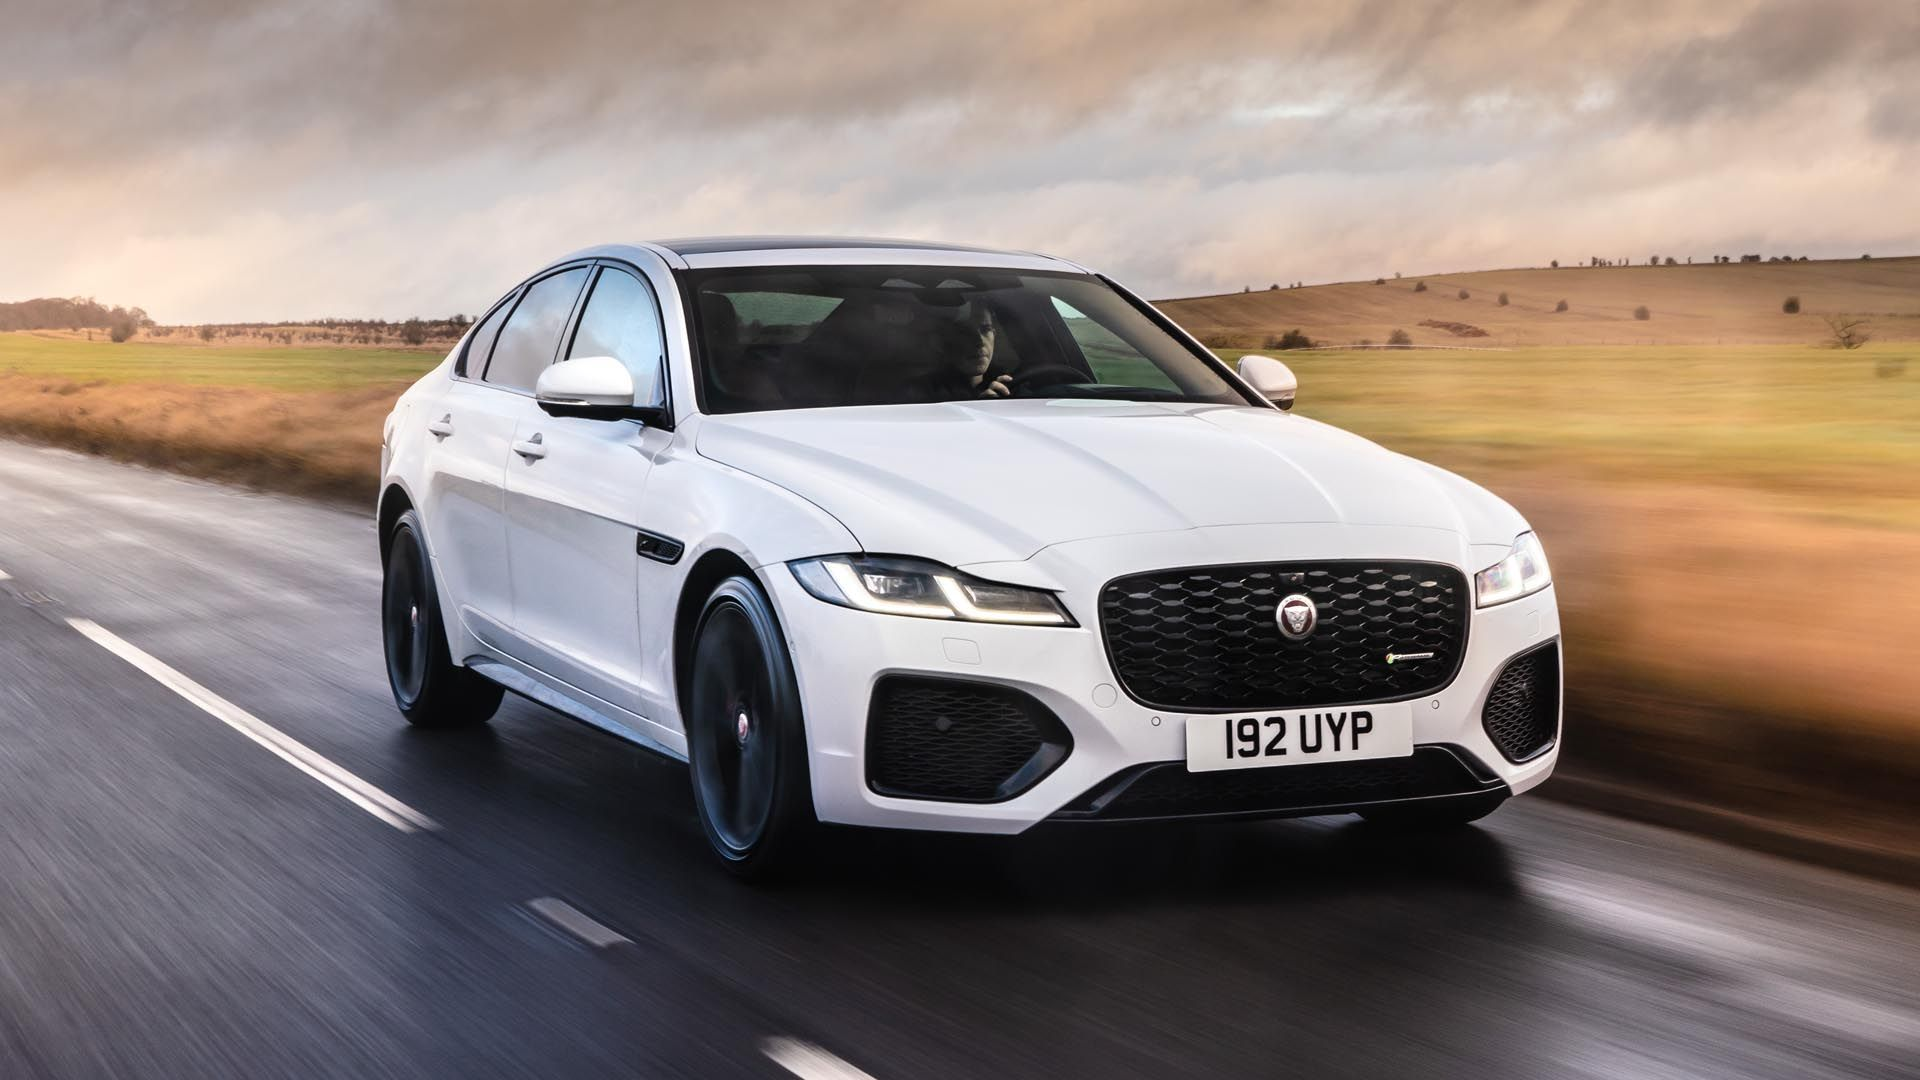 Jaguar XF Luxury image